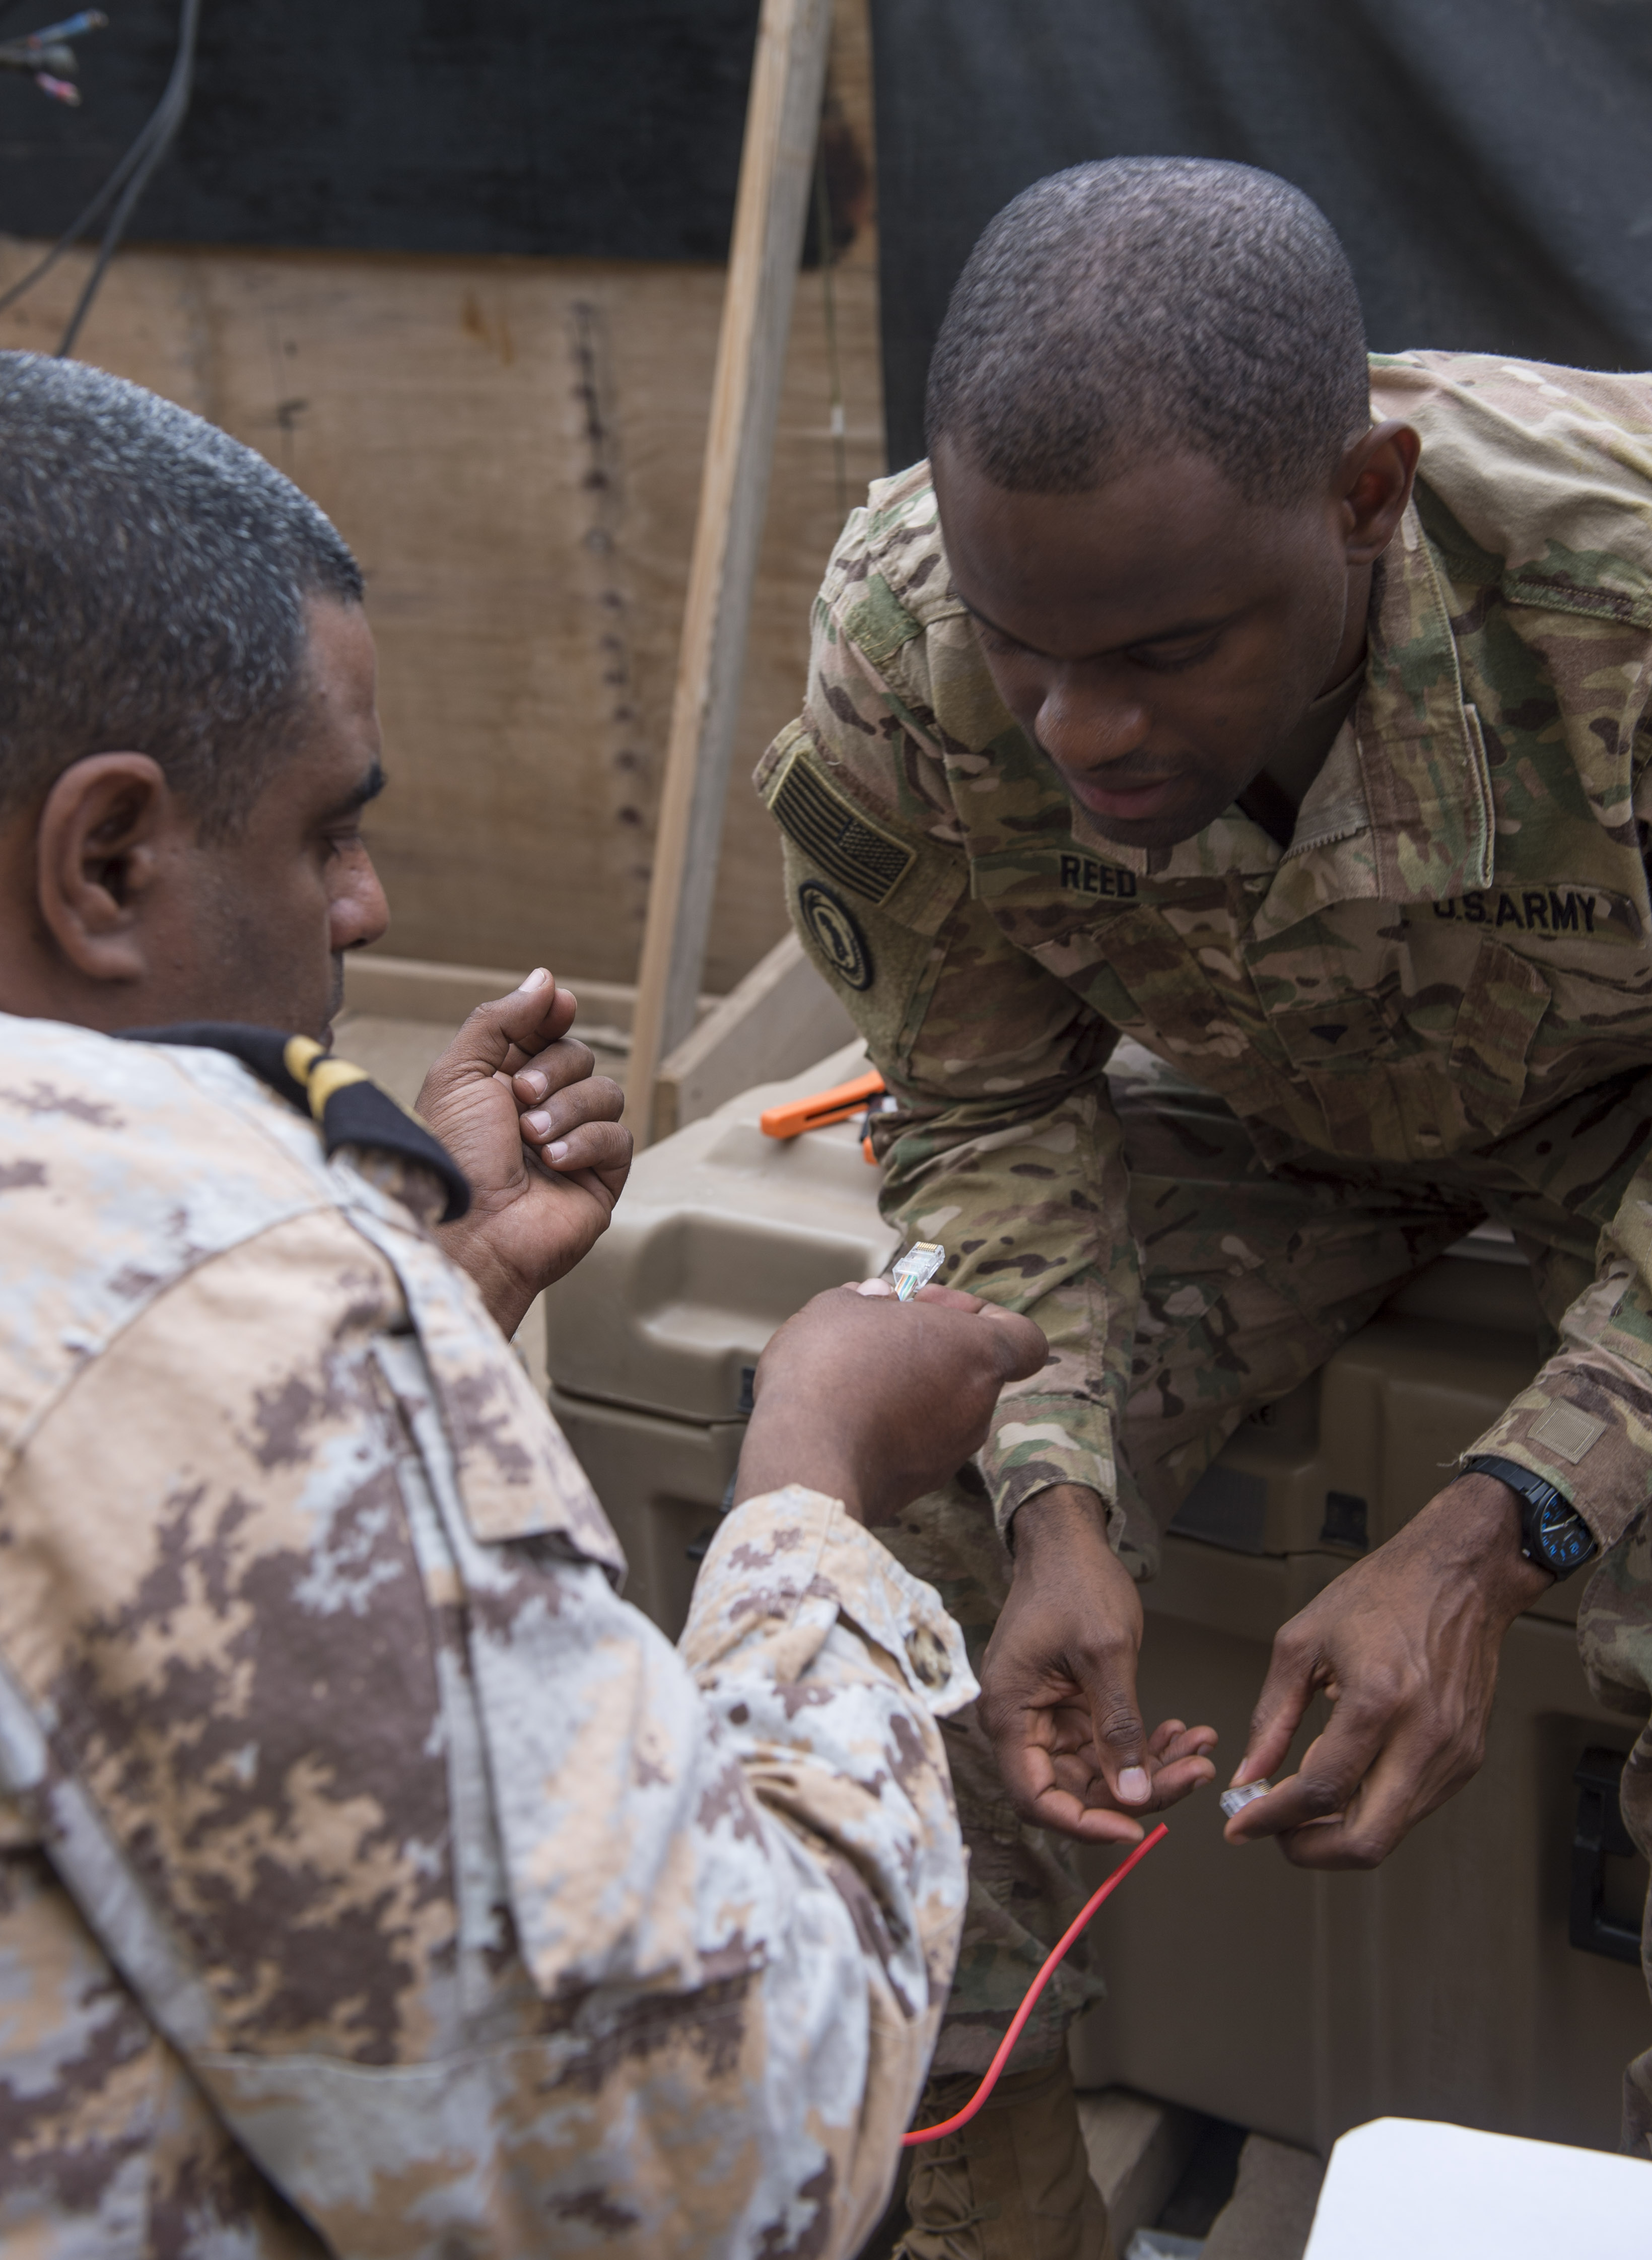 U.S. Army Spc. William Reed, a multisystem transmission operator and maintainer assigned to the Combined Joint Task Force - Horn of Africa (CJTF-HOA) Communications Directorate, inspects the cable connector created by a Djibouti Armed Forces member during a military-to-military exchange course at Camp Lemonnier, Djibouti, Jan. 10, 2018. Throughout a two-week period, communications experts advised Djiboutian service members on how to set up, operate, maintain, and troubleshoot network equipment to increase communication capabilities between African Union Mission in Somalia forces. (U.S. Air Force photo by Staff Sgt. Timothy Moore)